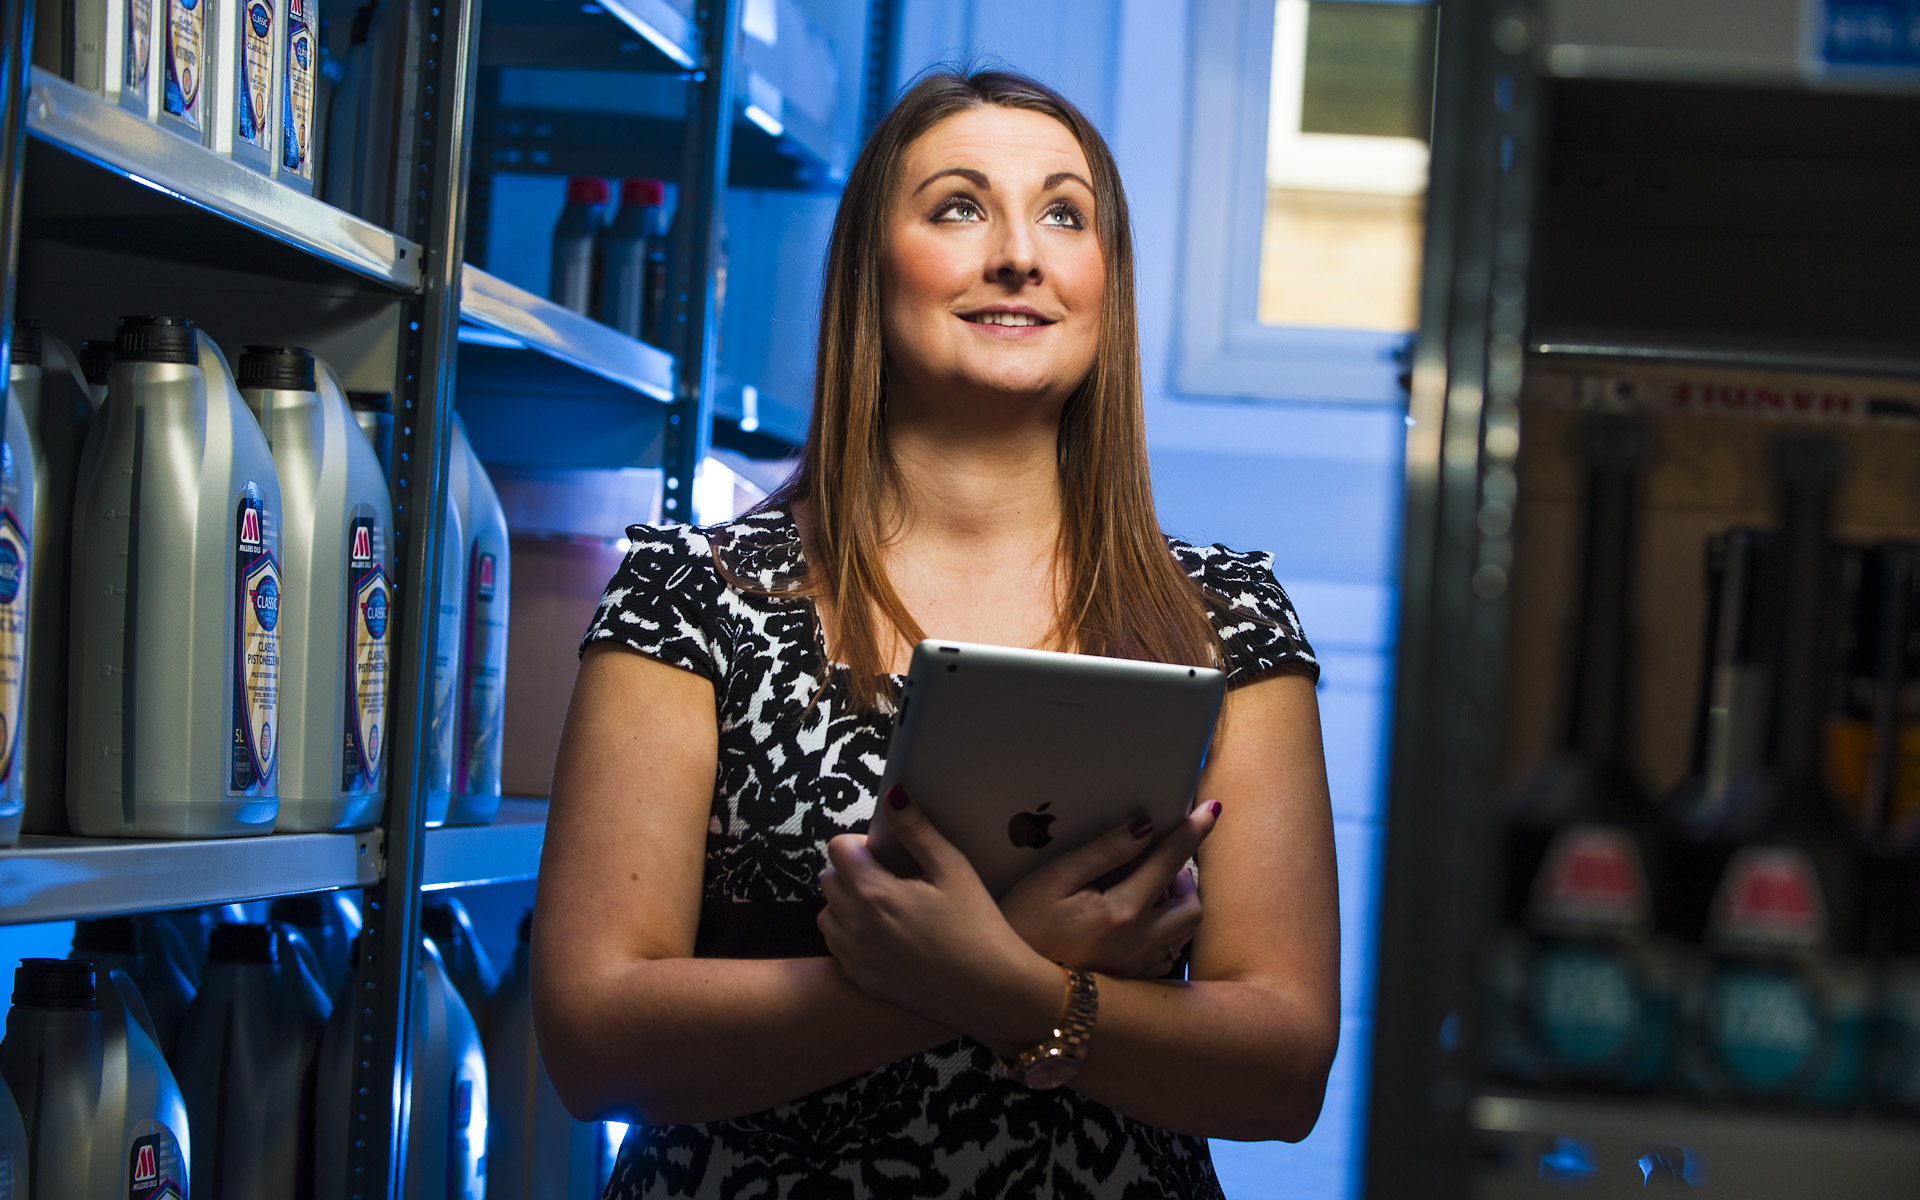 woman holding ipad amongst store room of engine oil